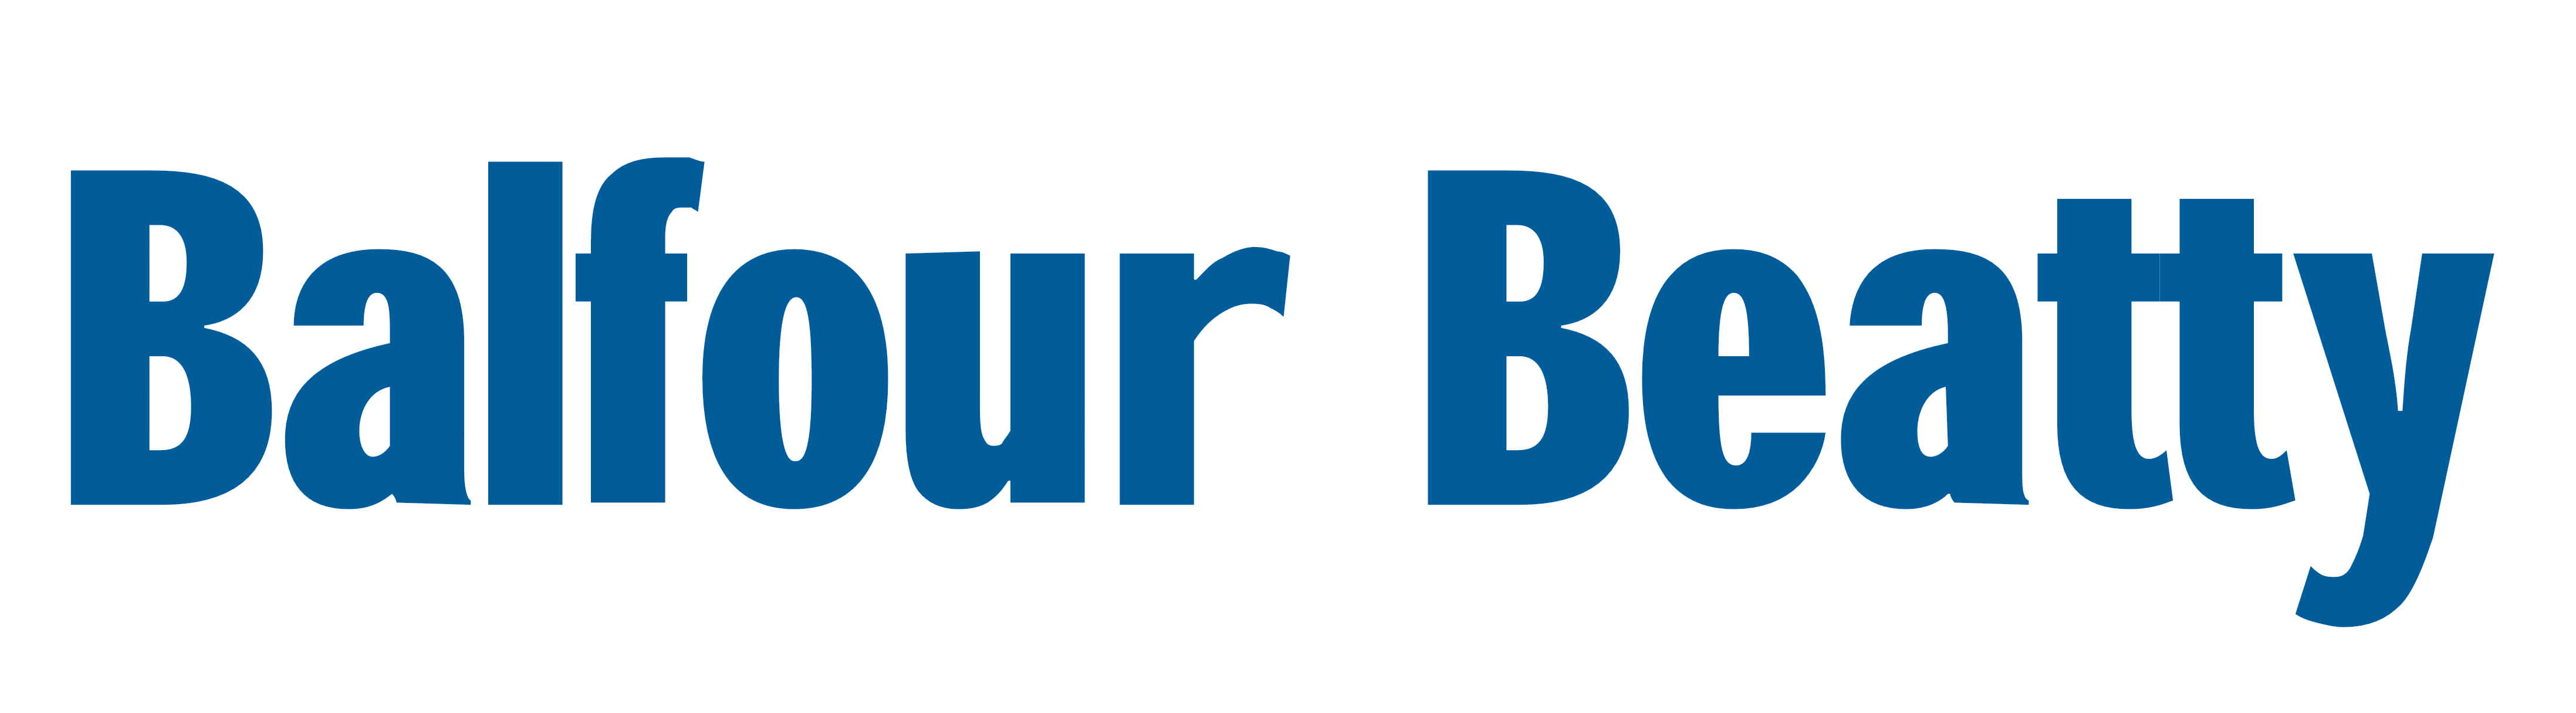 Balfour_Beatty_logo